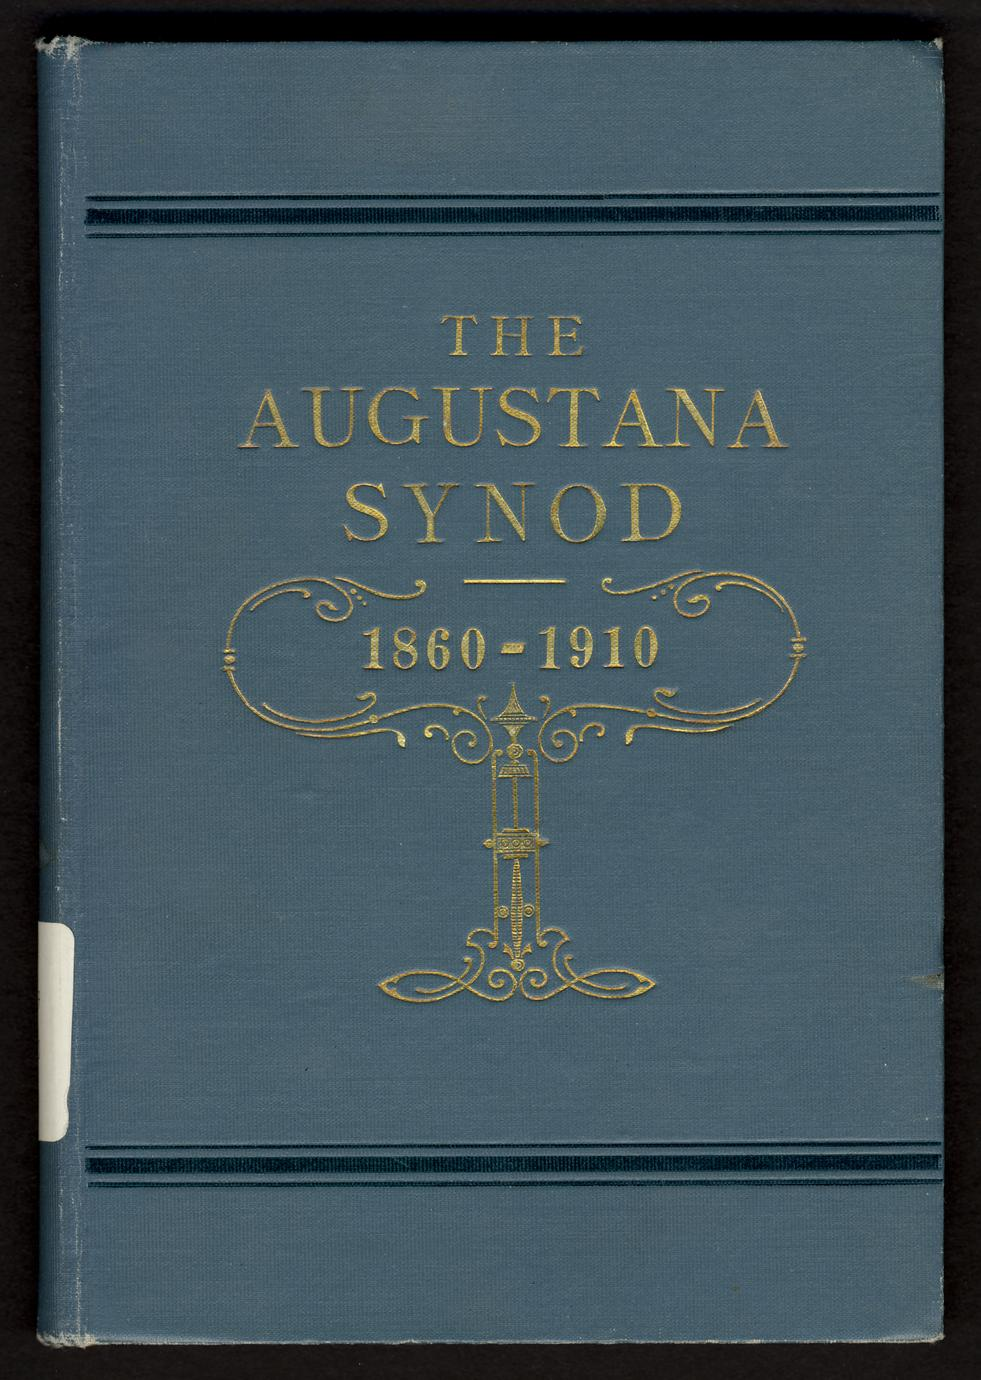 The Augustana Synod : a brief review of its history, 1860-1910 (1 of 3)